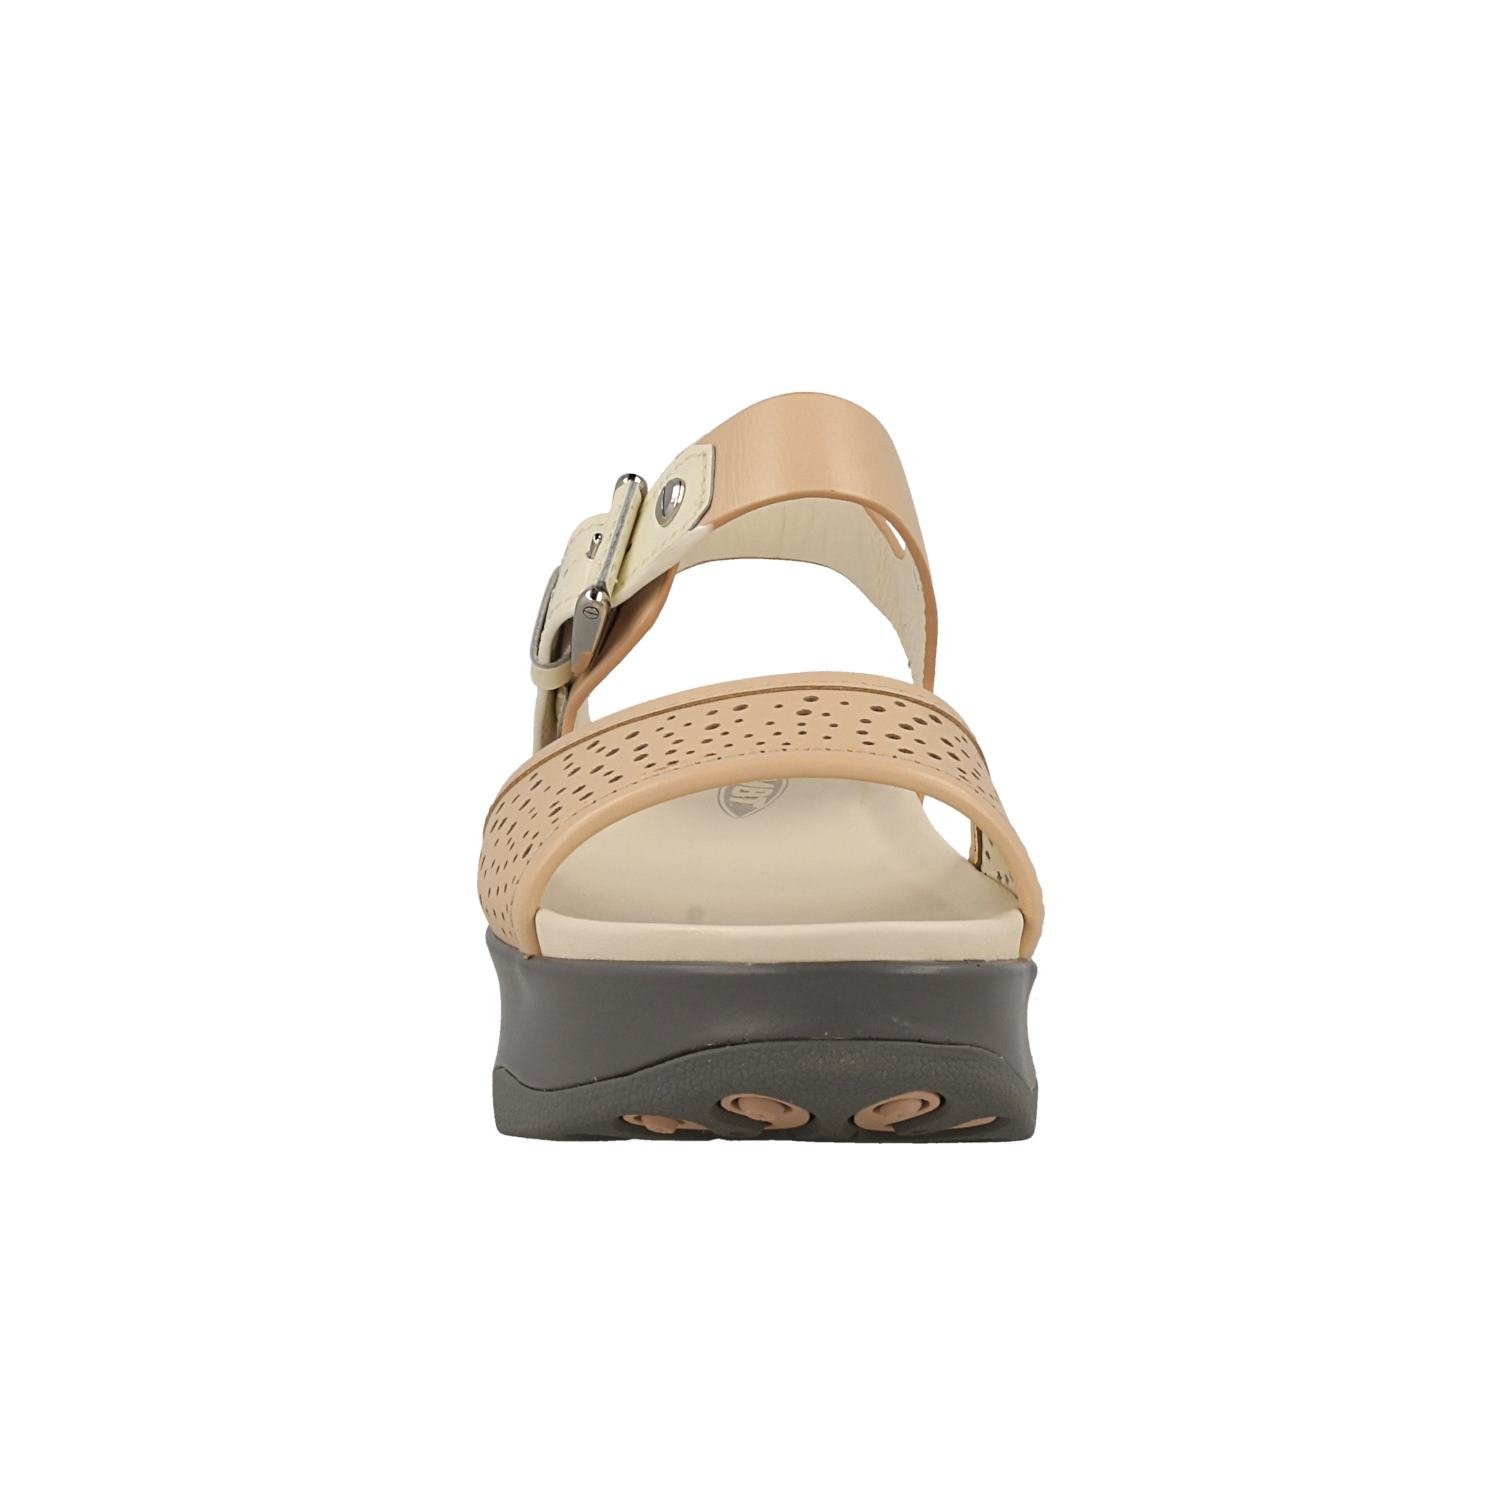 7a9cf5896bca MBT Women s Tulia 6 W Sling Back Sandals